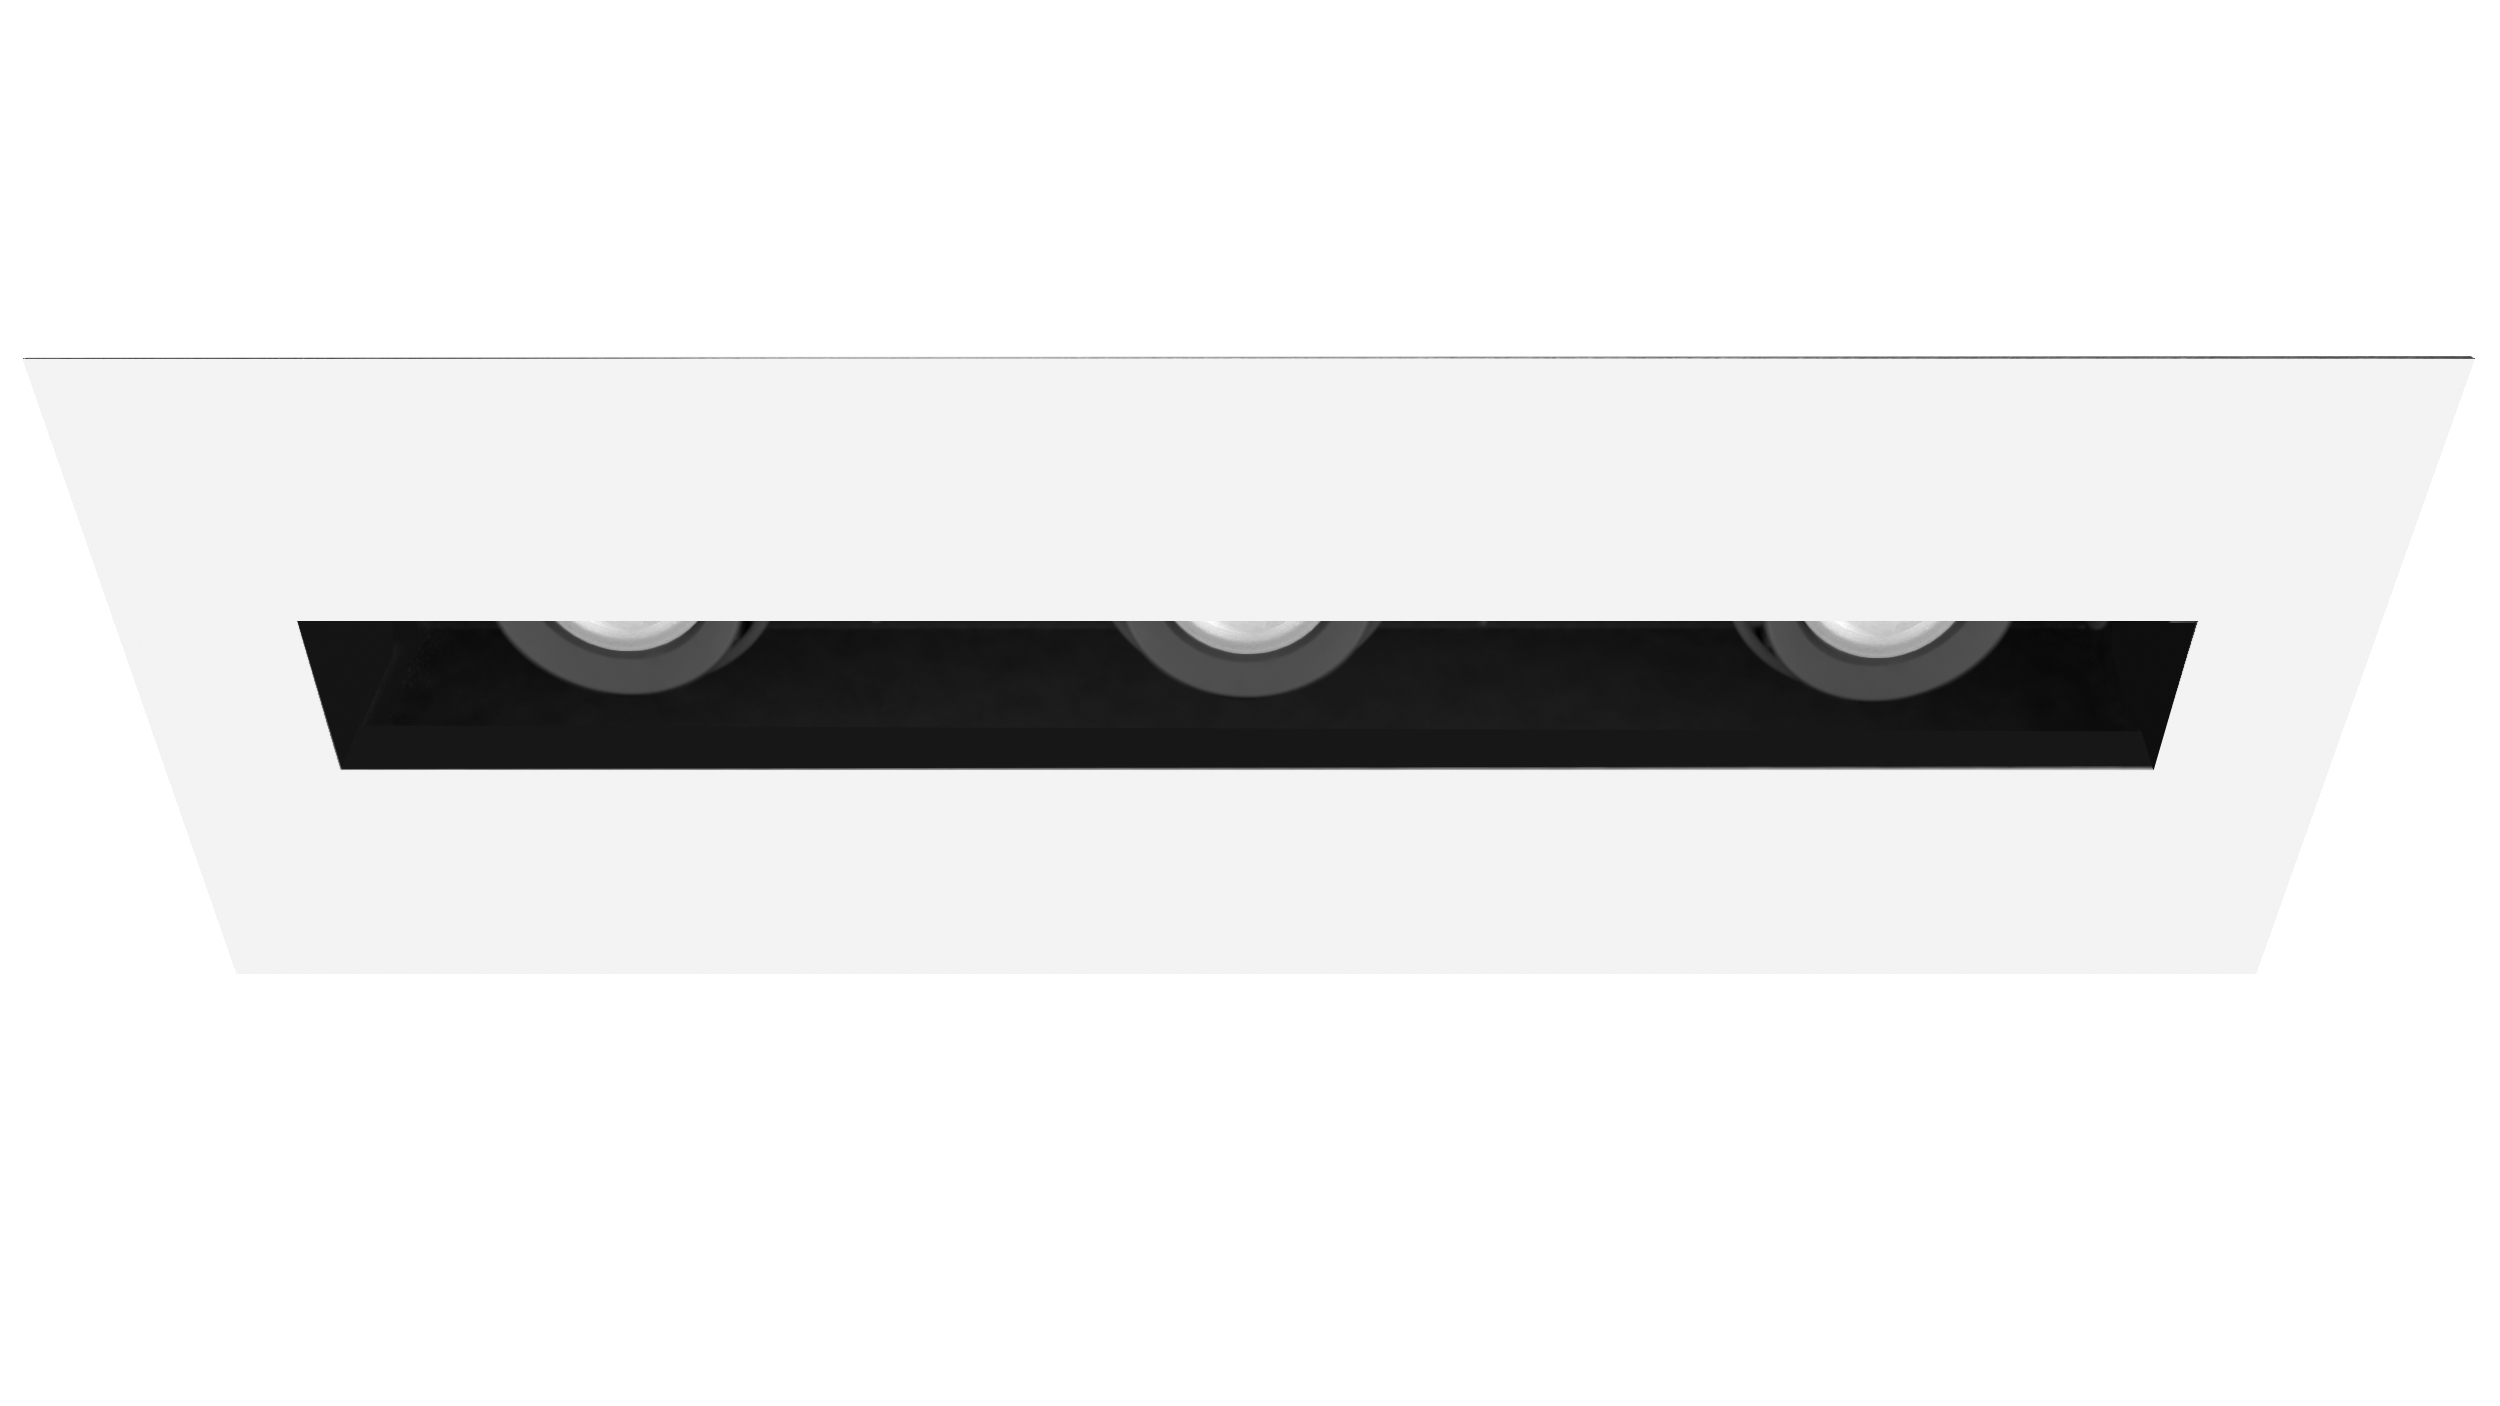 The new Amerlux Velato LED reveals concealed beams of